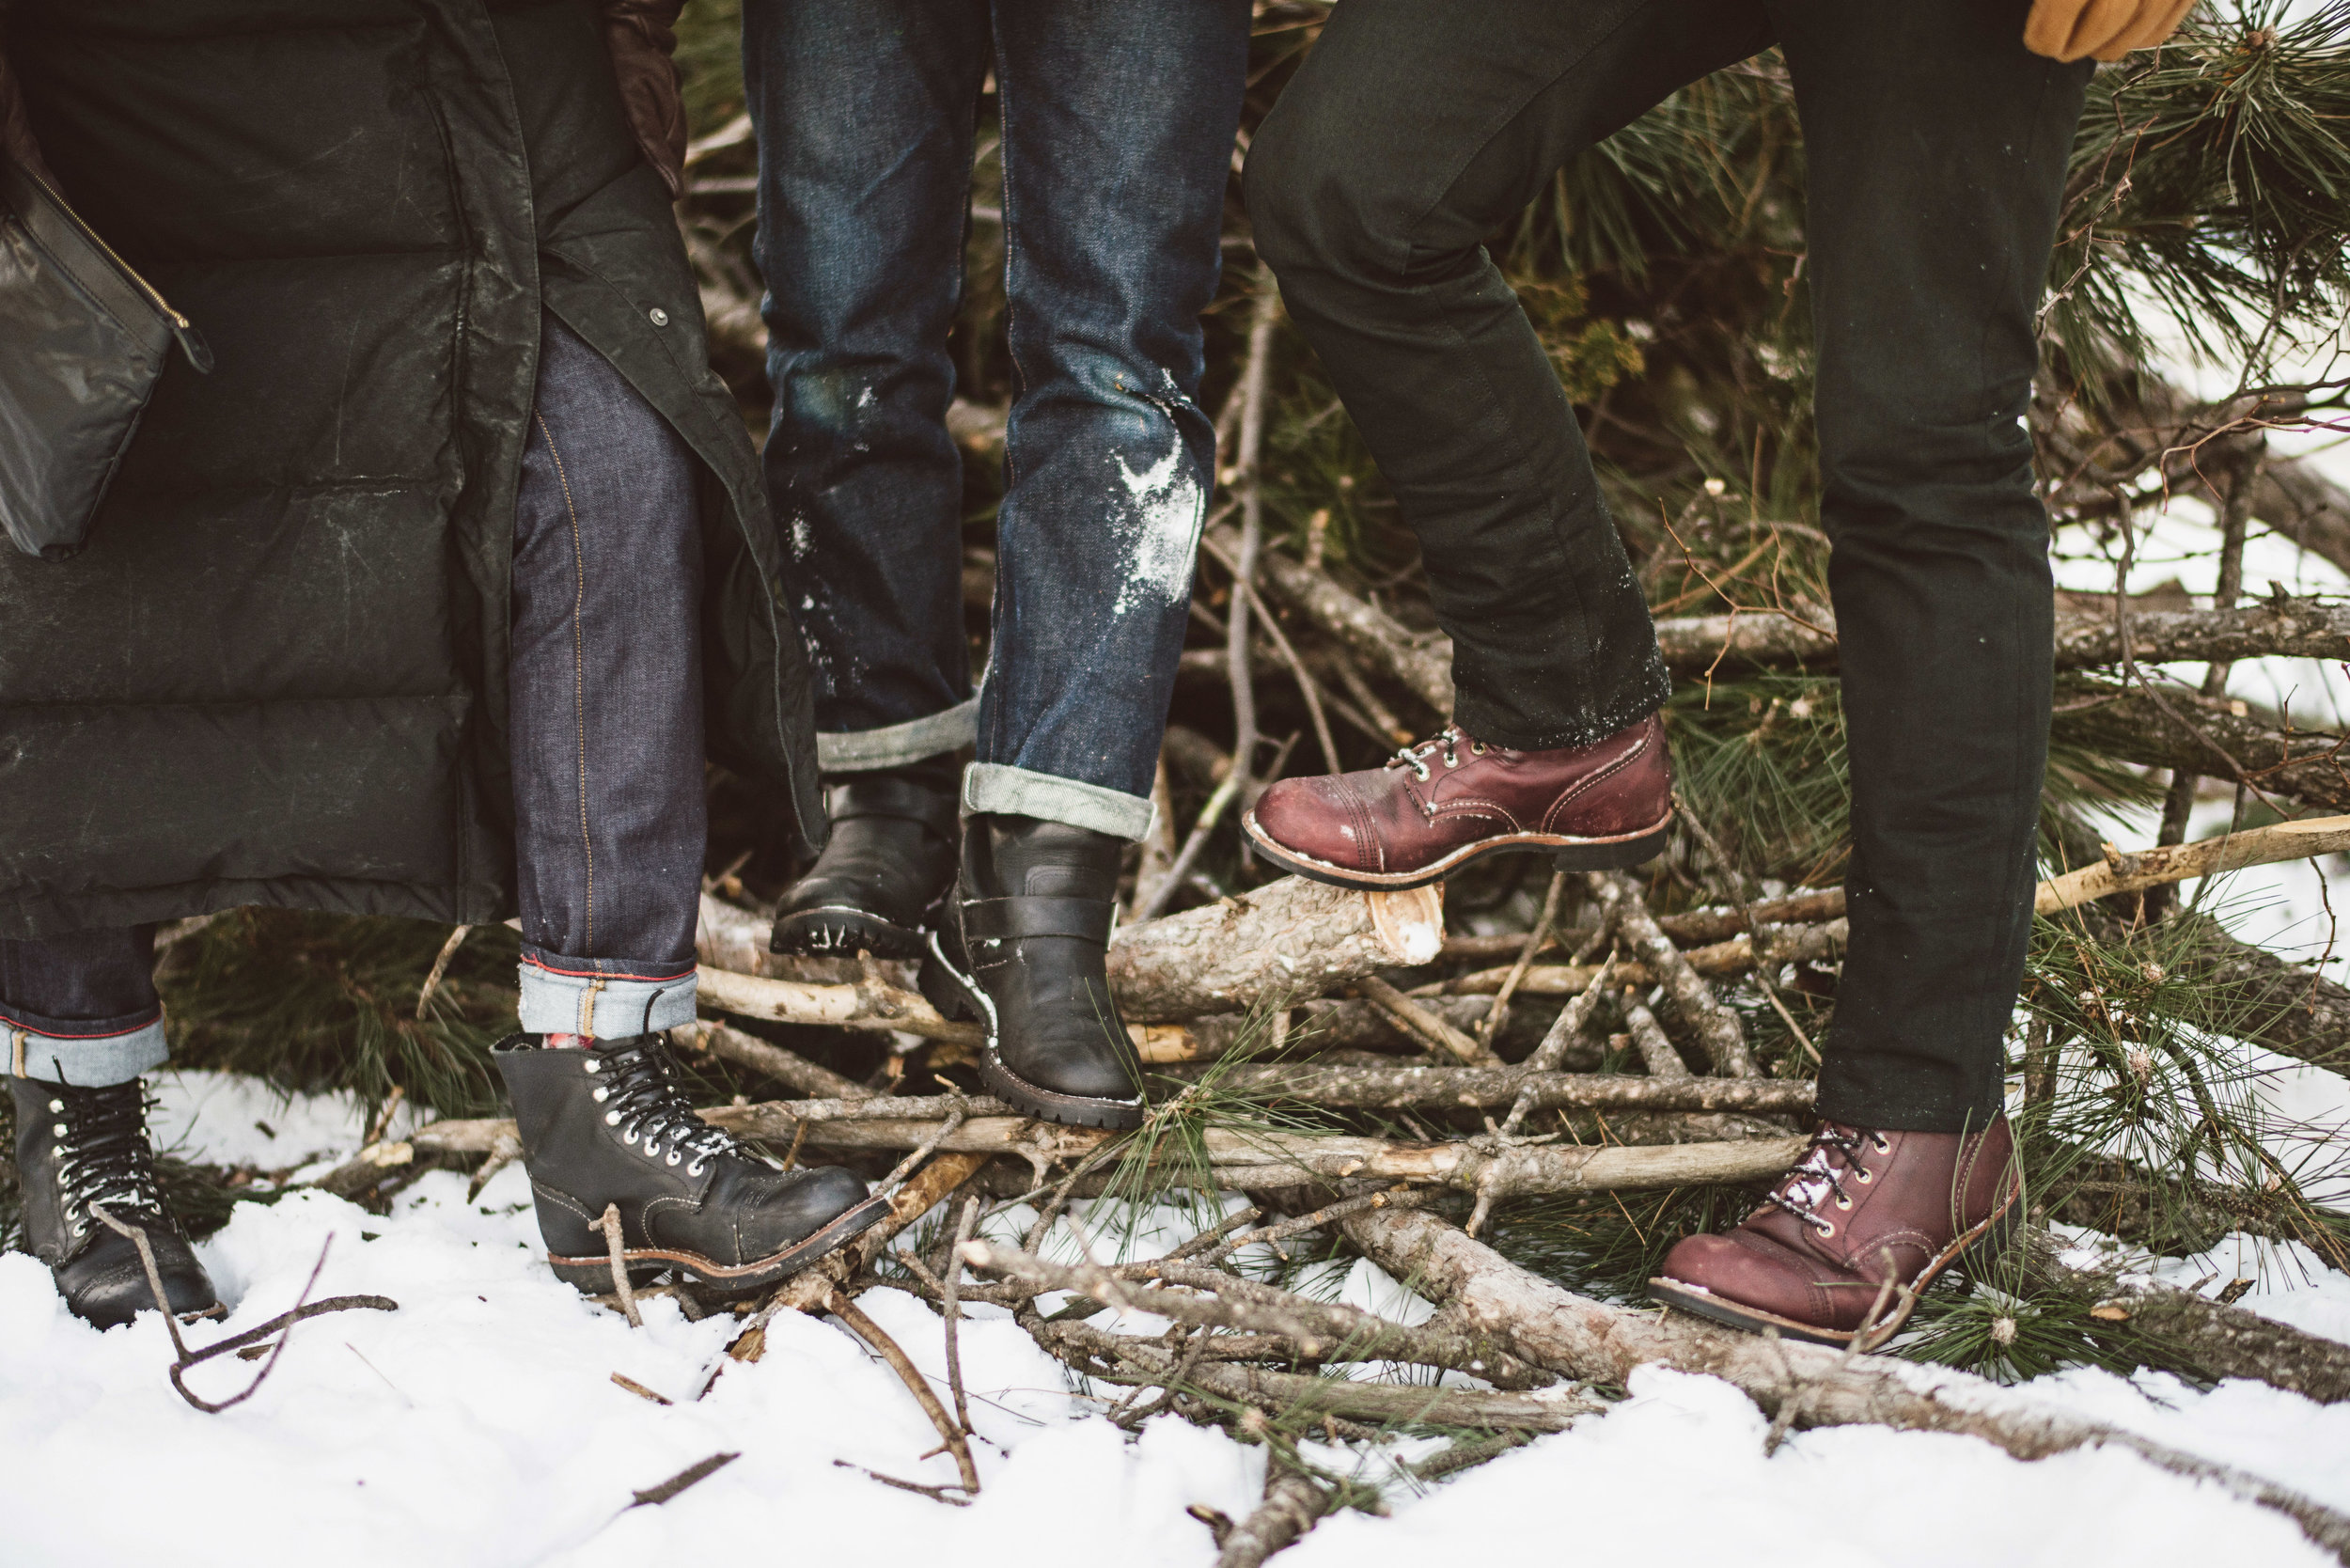 rewing_heritage_boots_winter_snow_photos_by_lucas_botz_096 (1).jpg